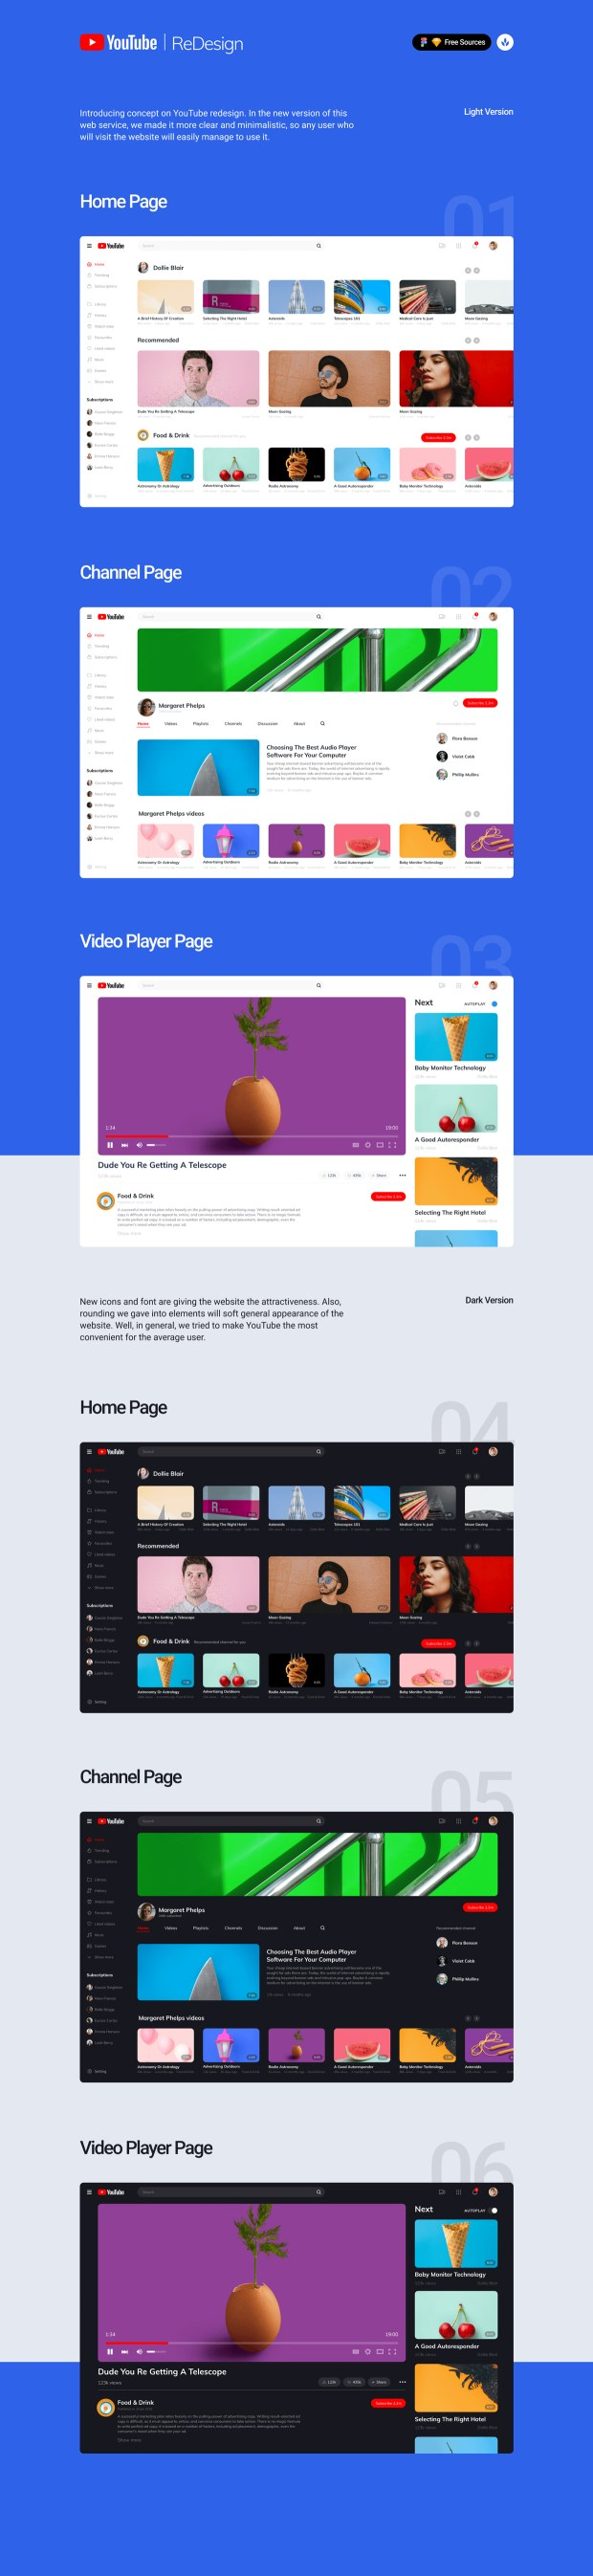 YouTube Redesign Concept Freebie